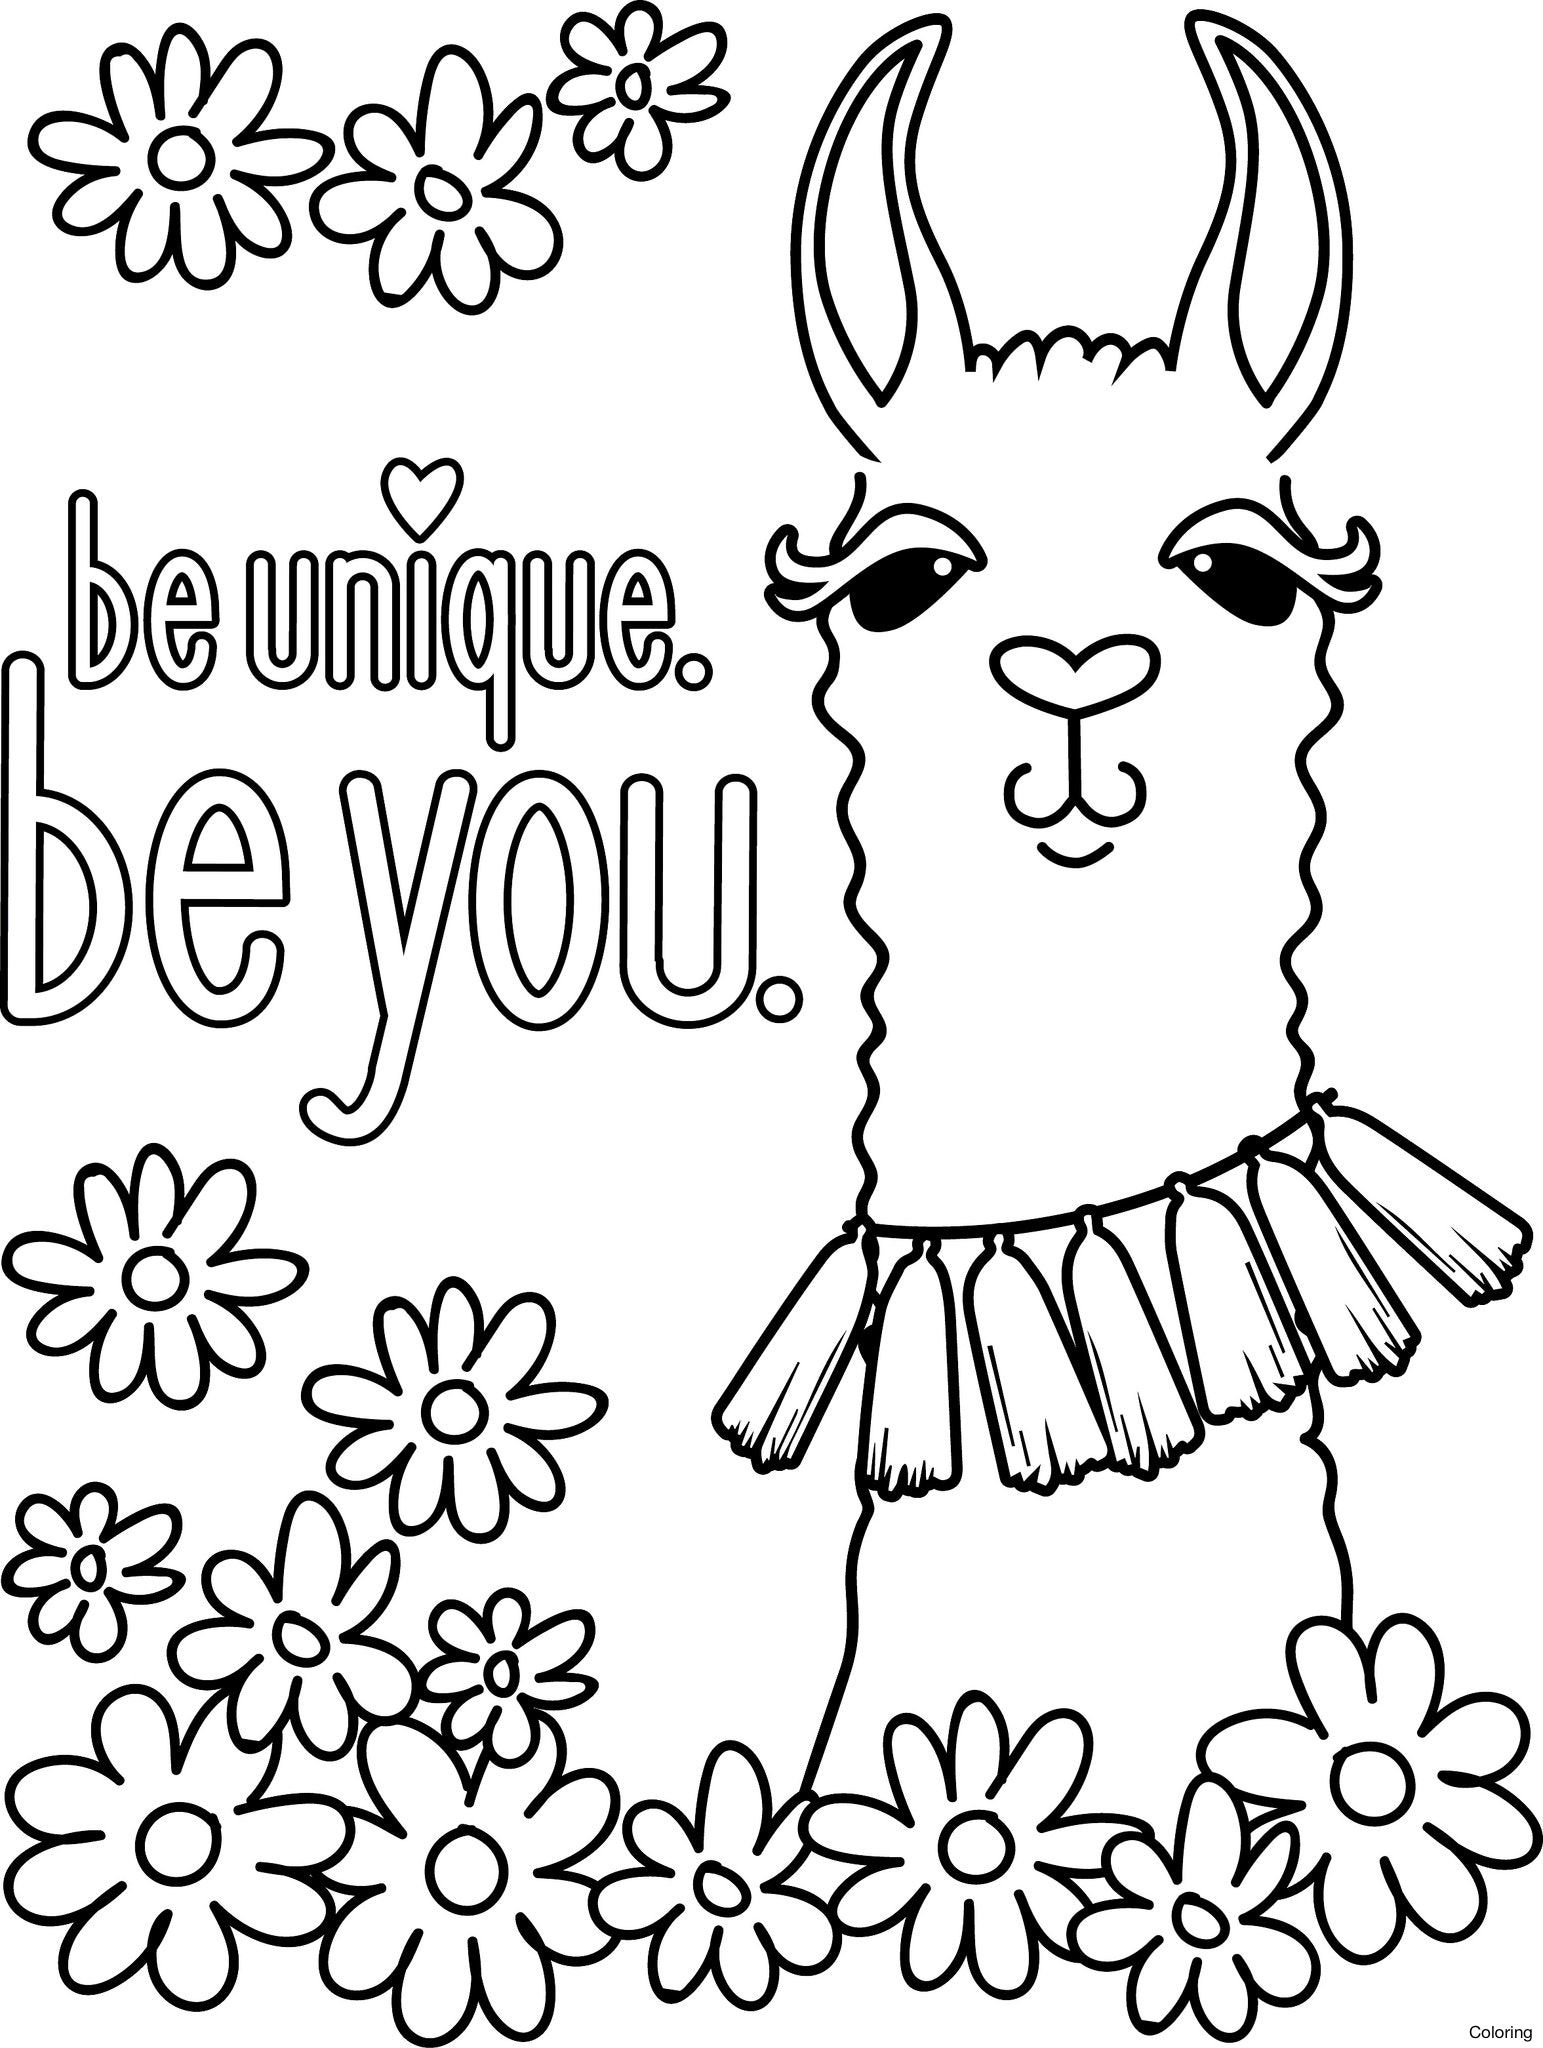 Animal Llama Print Coloring Pages 5f Funny Of Free Diaiz Coloring Pages For Girls Coloring Pages Coloring Pages For Kids